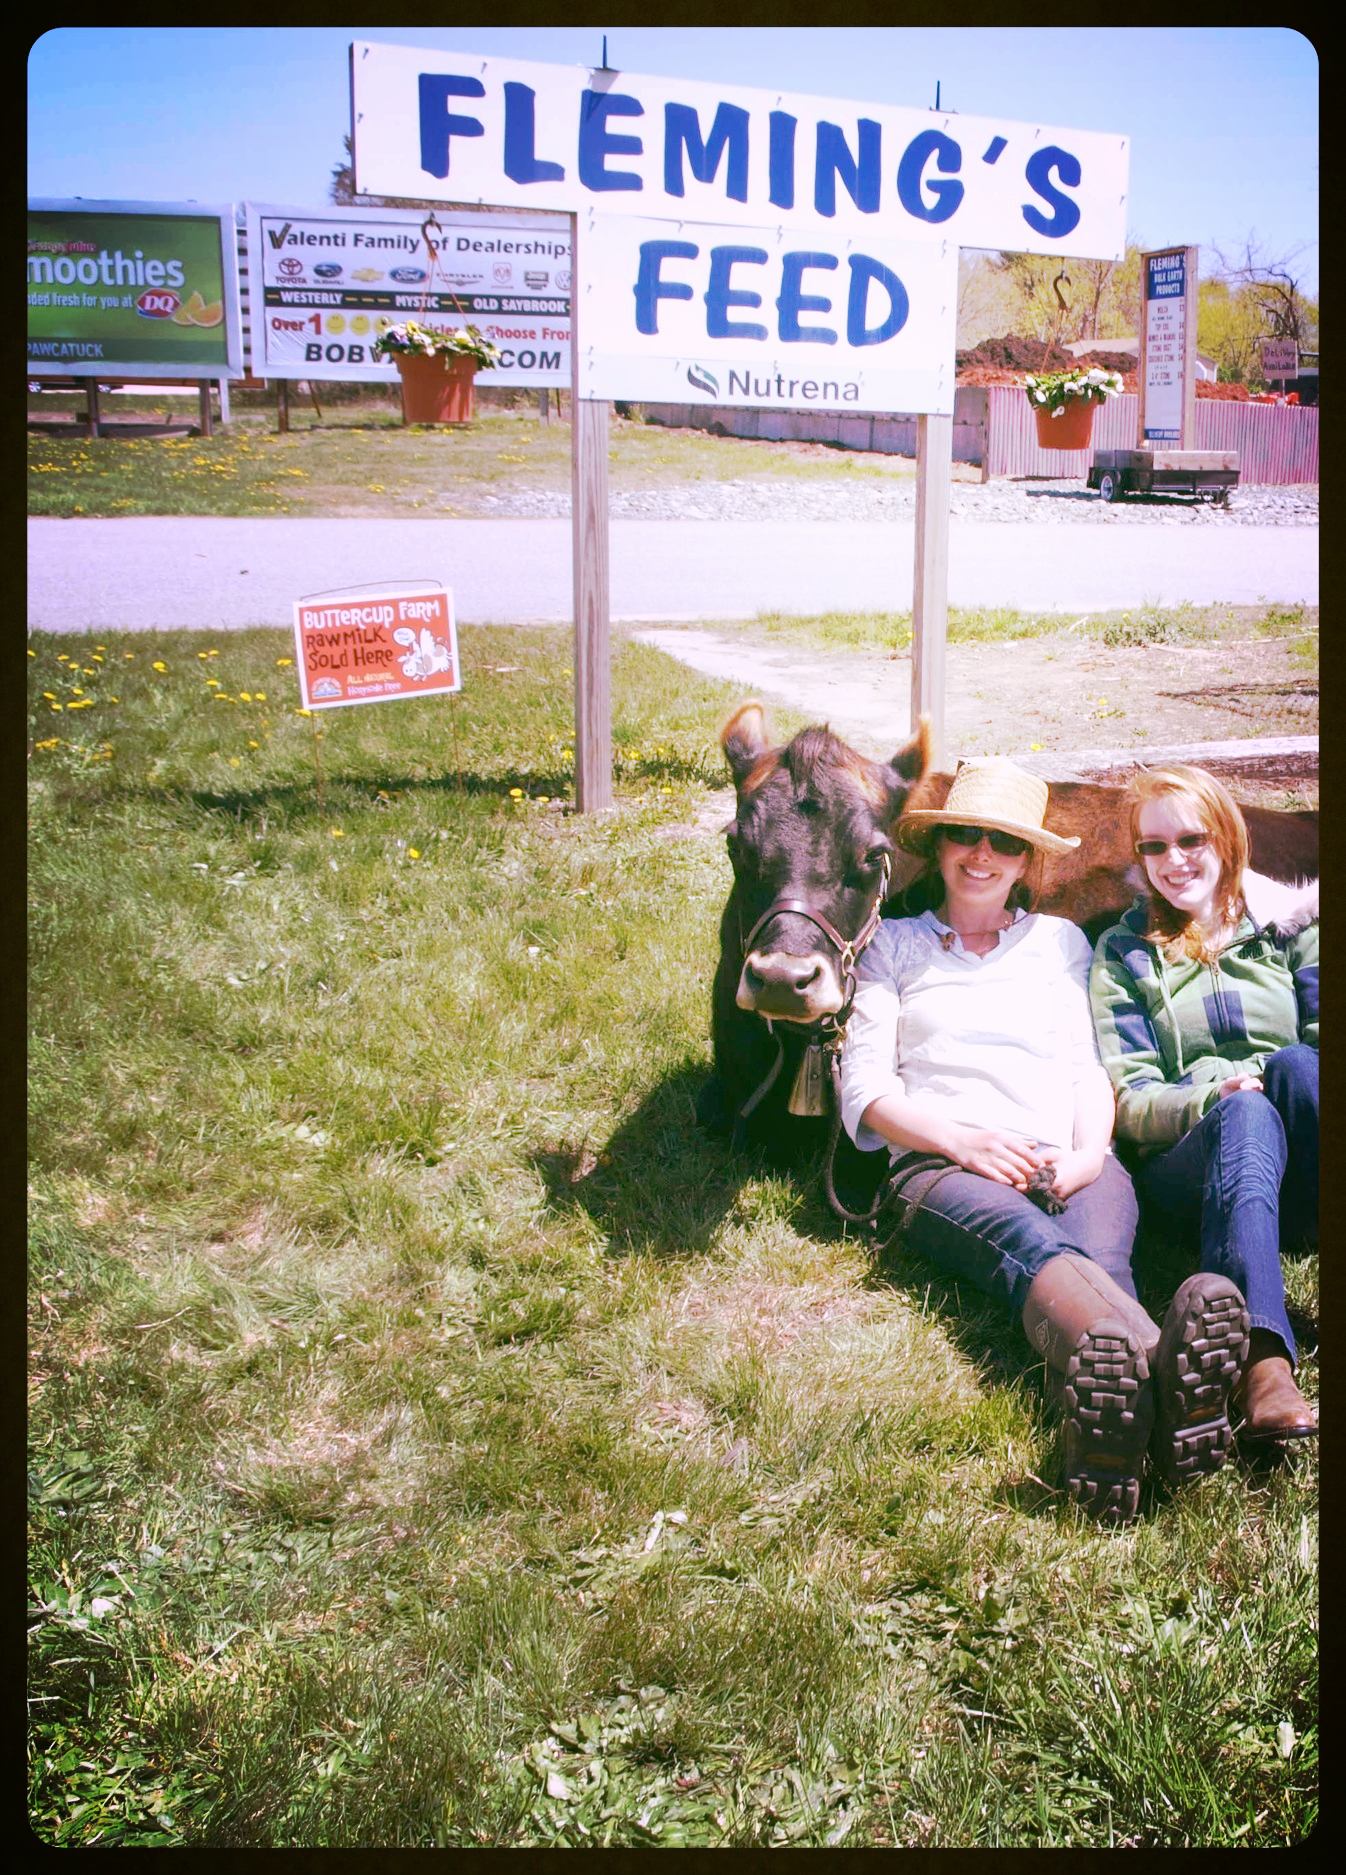 Megan, Melissa, and Driving Miss Daisy pictured here meeting & greeting at Fleming's Feed.